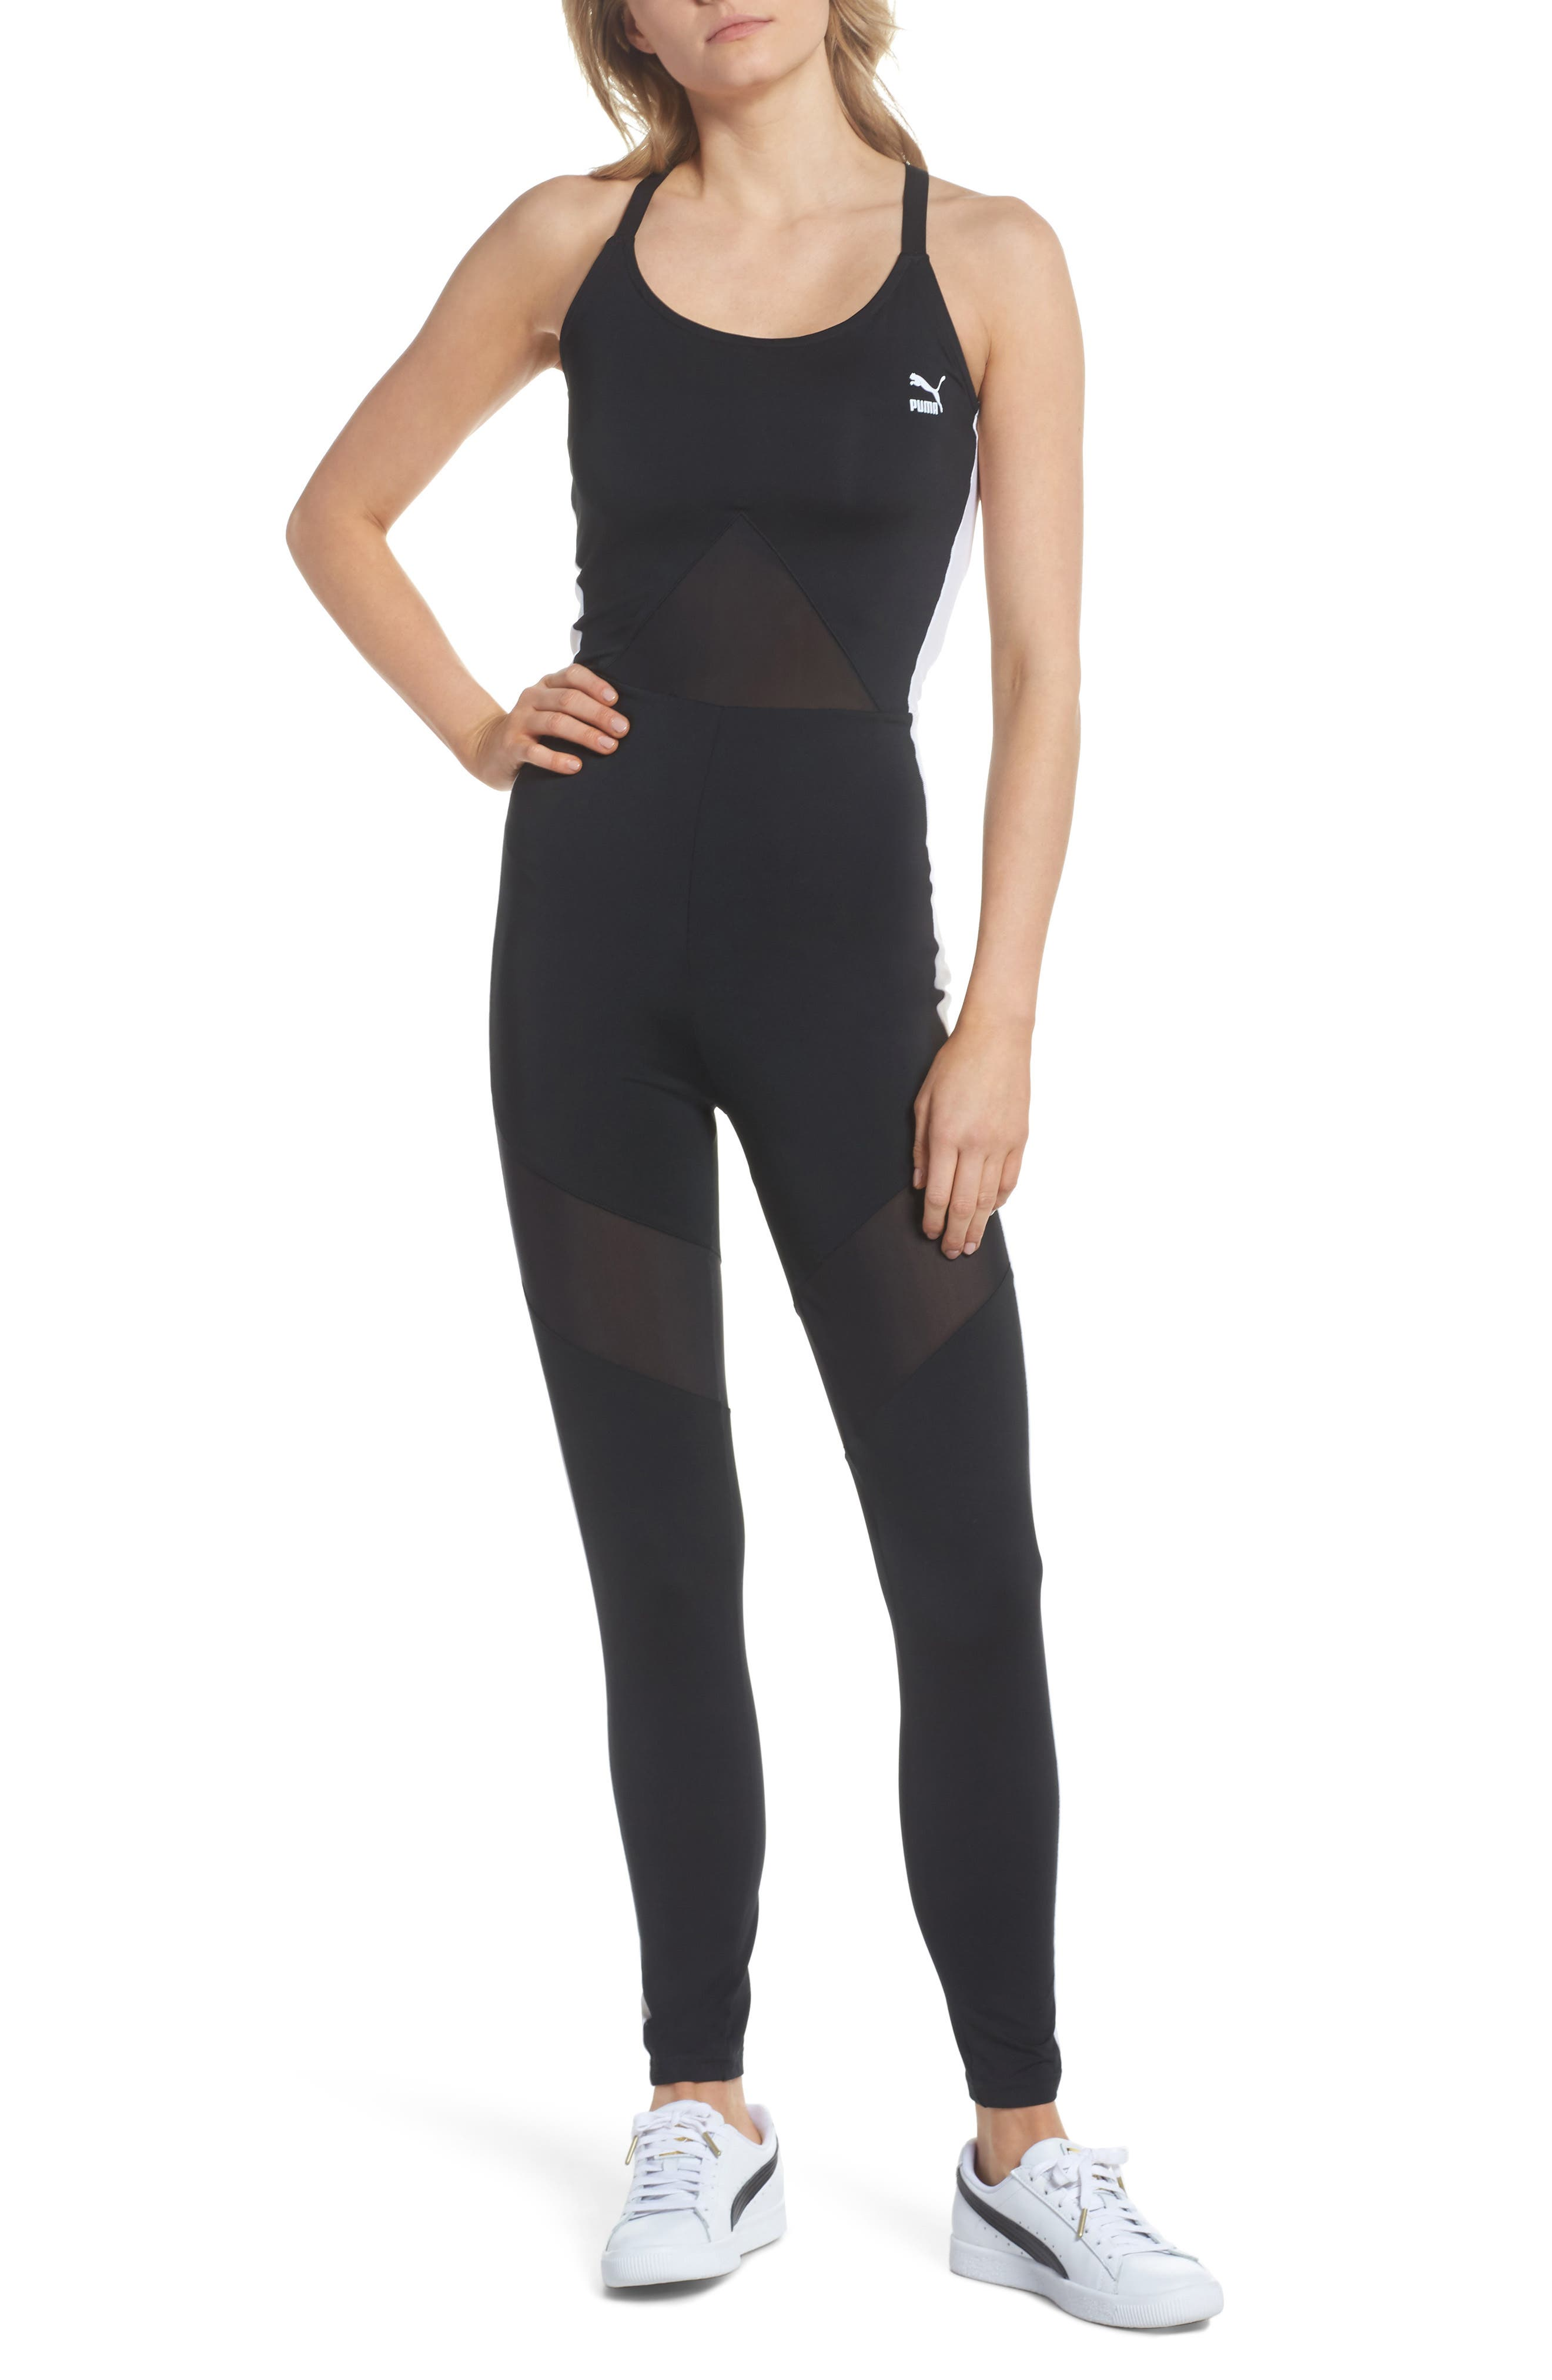 Archive T7 Unitard,                         Main,                         color, 003